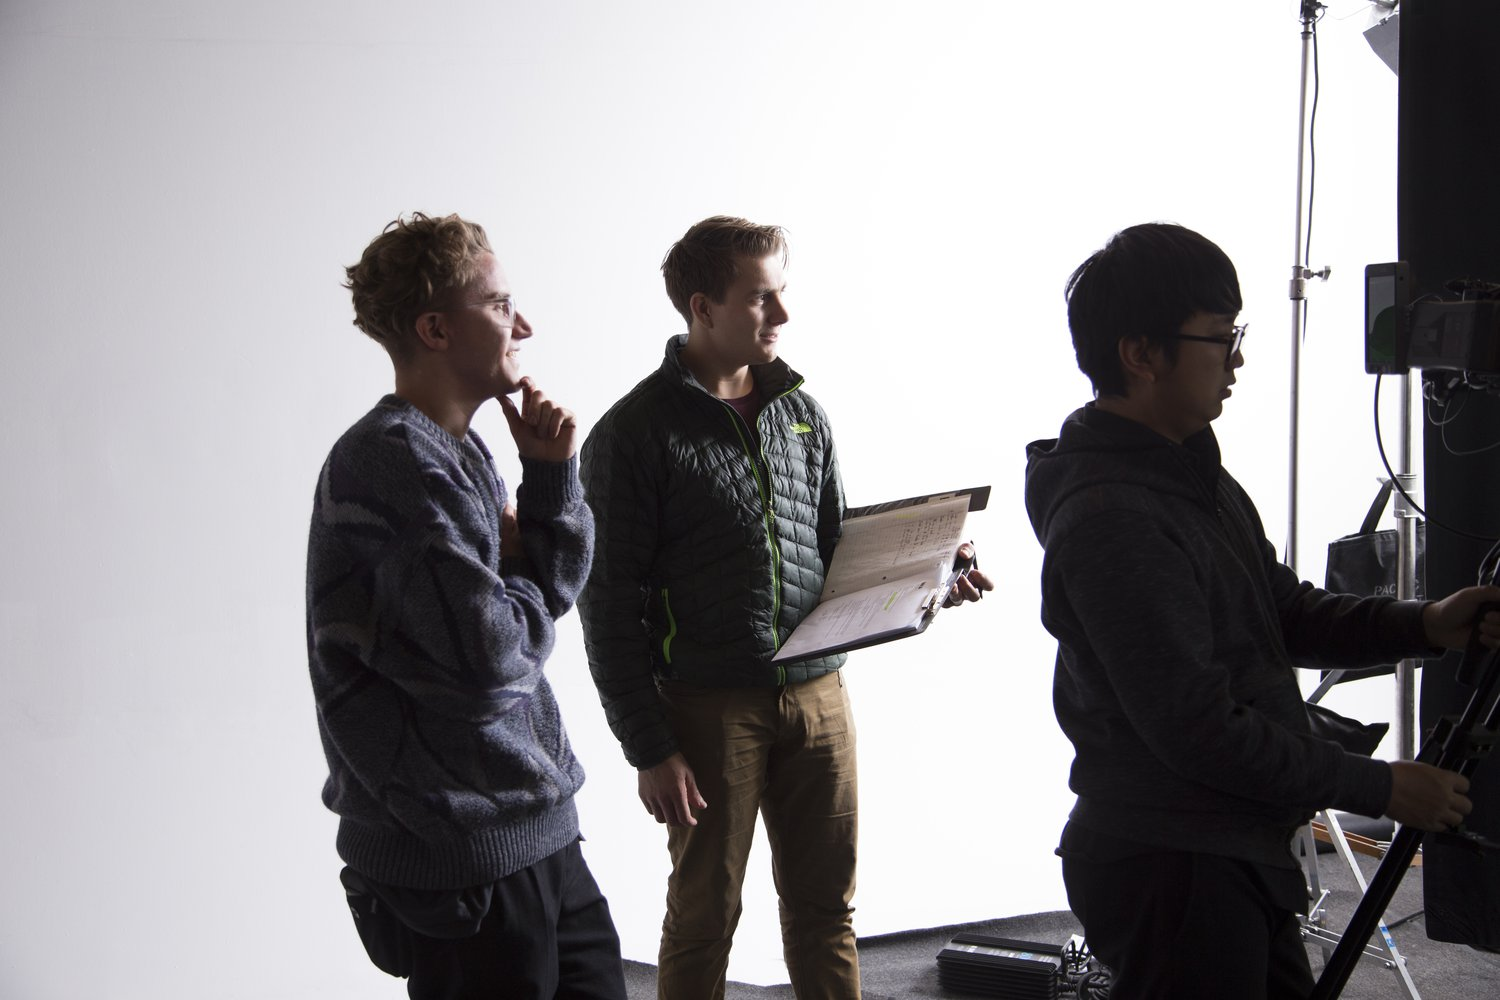 Jeremy Cox, Kristoff Duxbury, Cedric Yu on a commercial set in Vancouver, March 2013